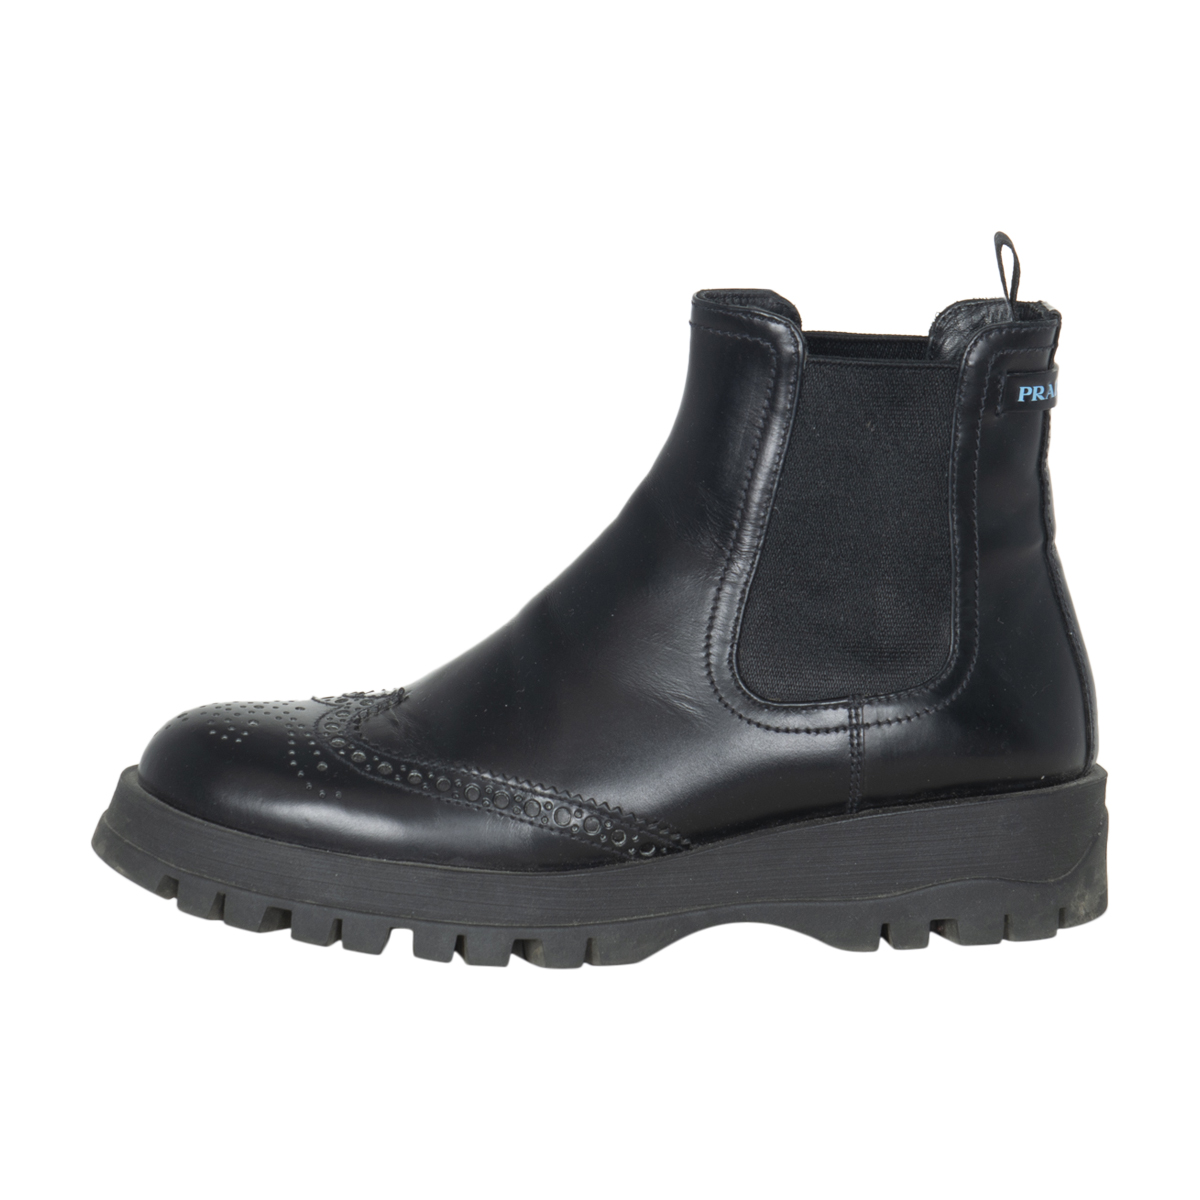 Prada Brogue Leather Ankle Boots